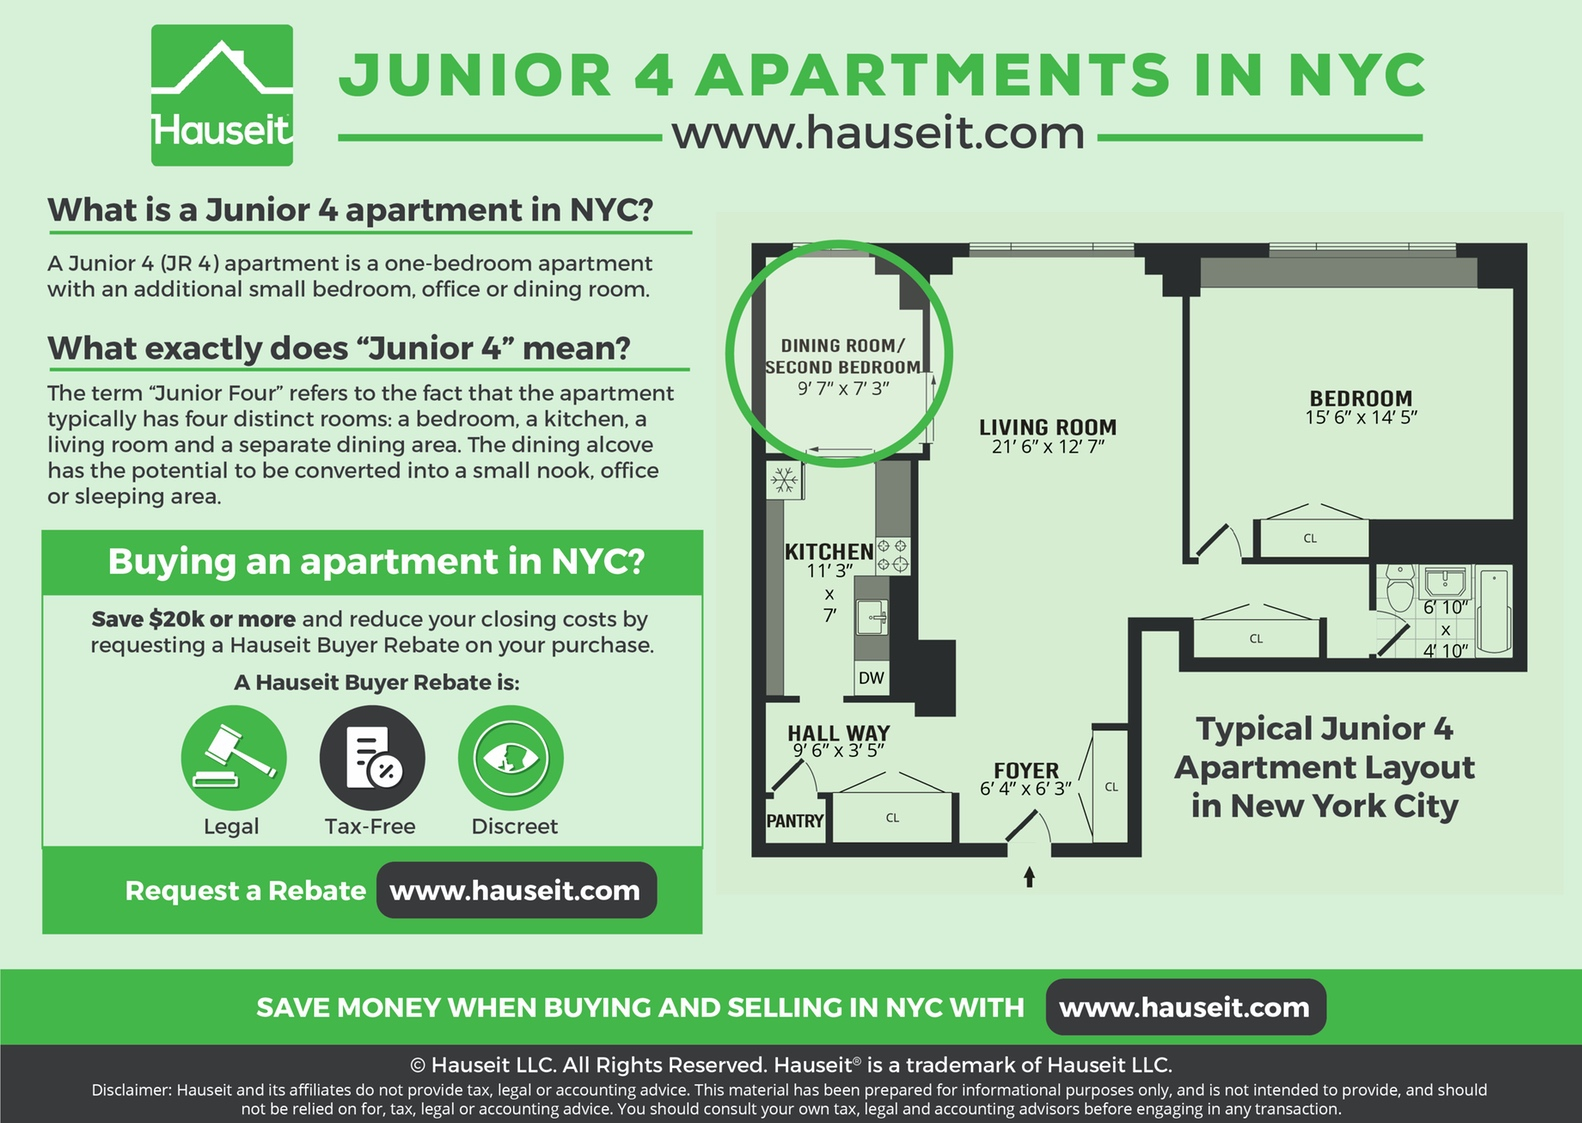 "The typical Junior Four apartment layout in NYC consists of a one-bedroom apartment with an additional small bedroom, office or dining room. The term ""Junior Four"" refers to the fact that the apartment typically has four distinct rooms: a bedroom, a kitchen, a living room and a separate dining area. The dining alcove has the potential to be converted into a small nook, office or sleeping area."